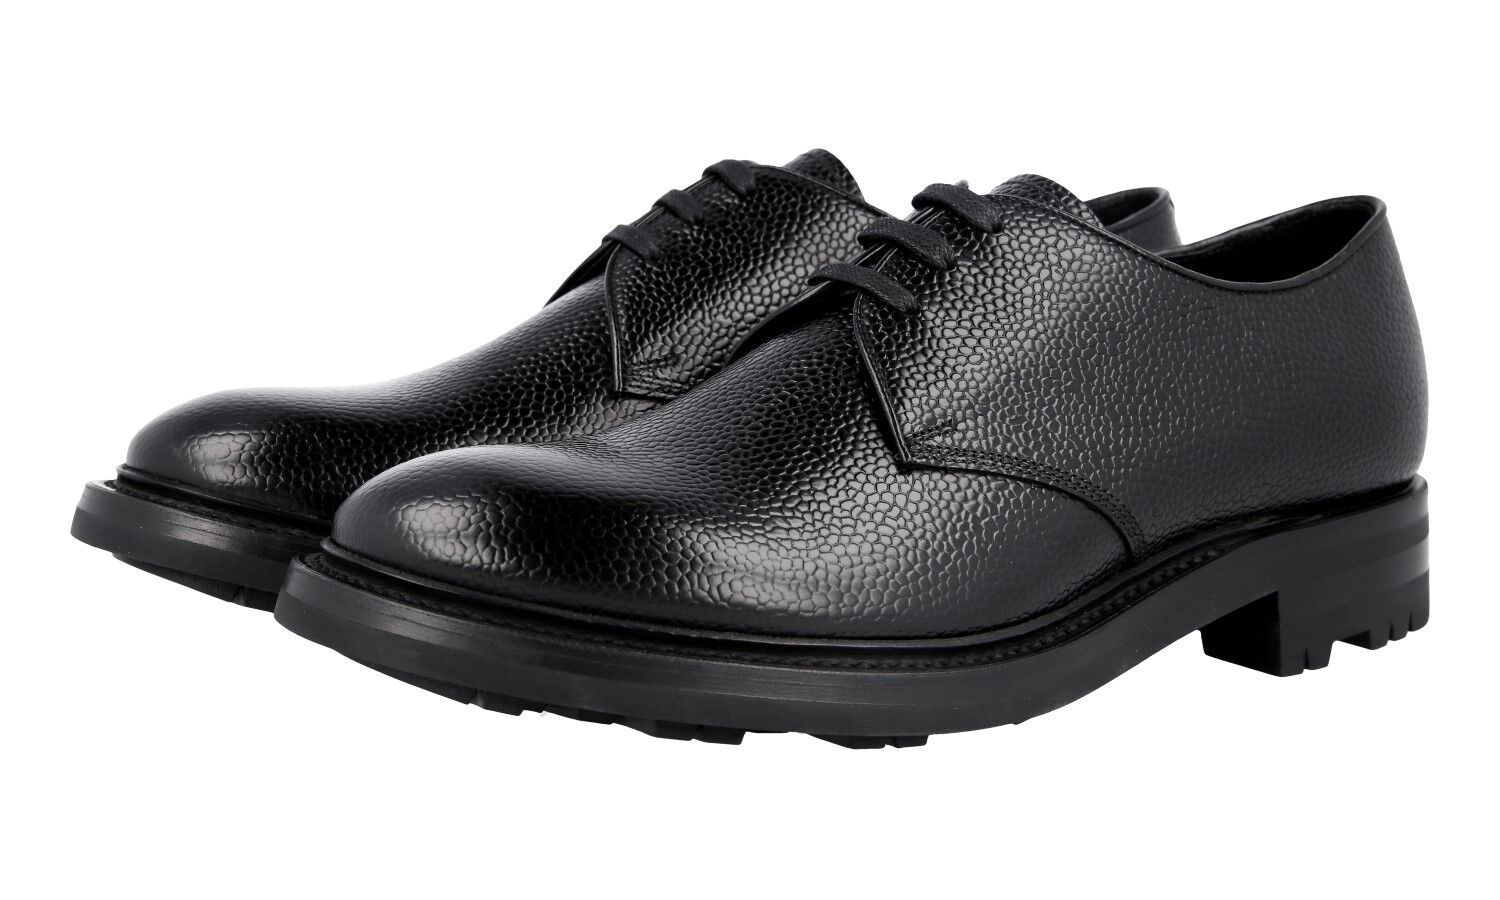 AUTH LUXURY PRADA DERBY BUSINESS SHOES 2EE228 BLACK NEW 10 44 44,5